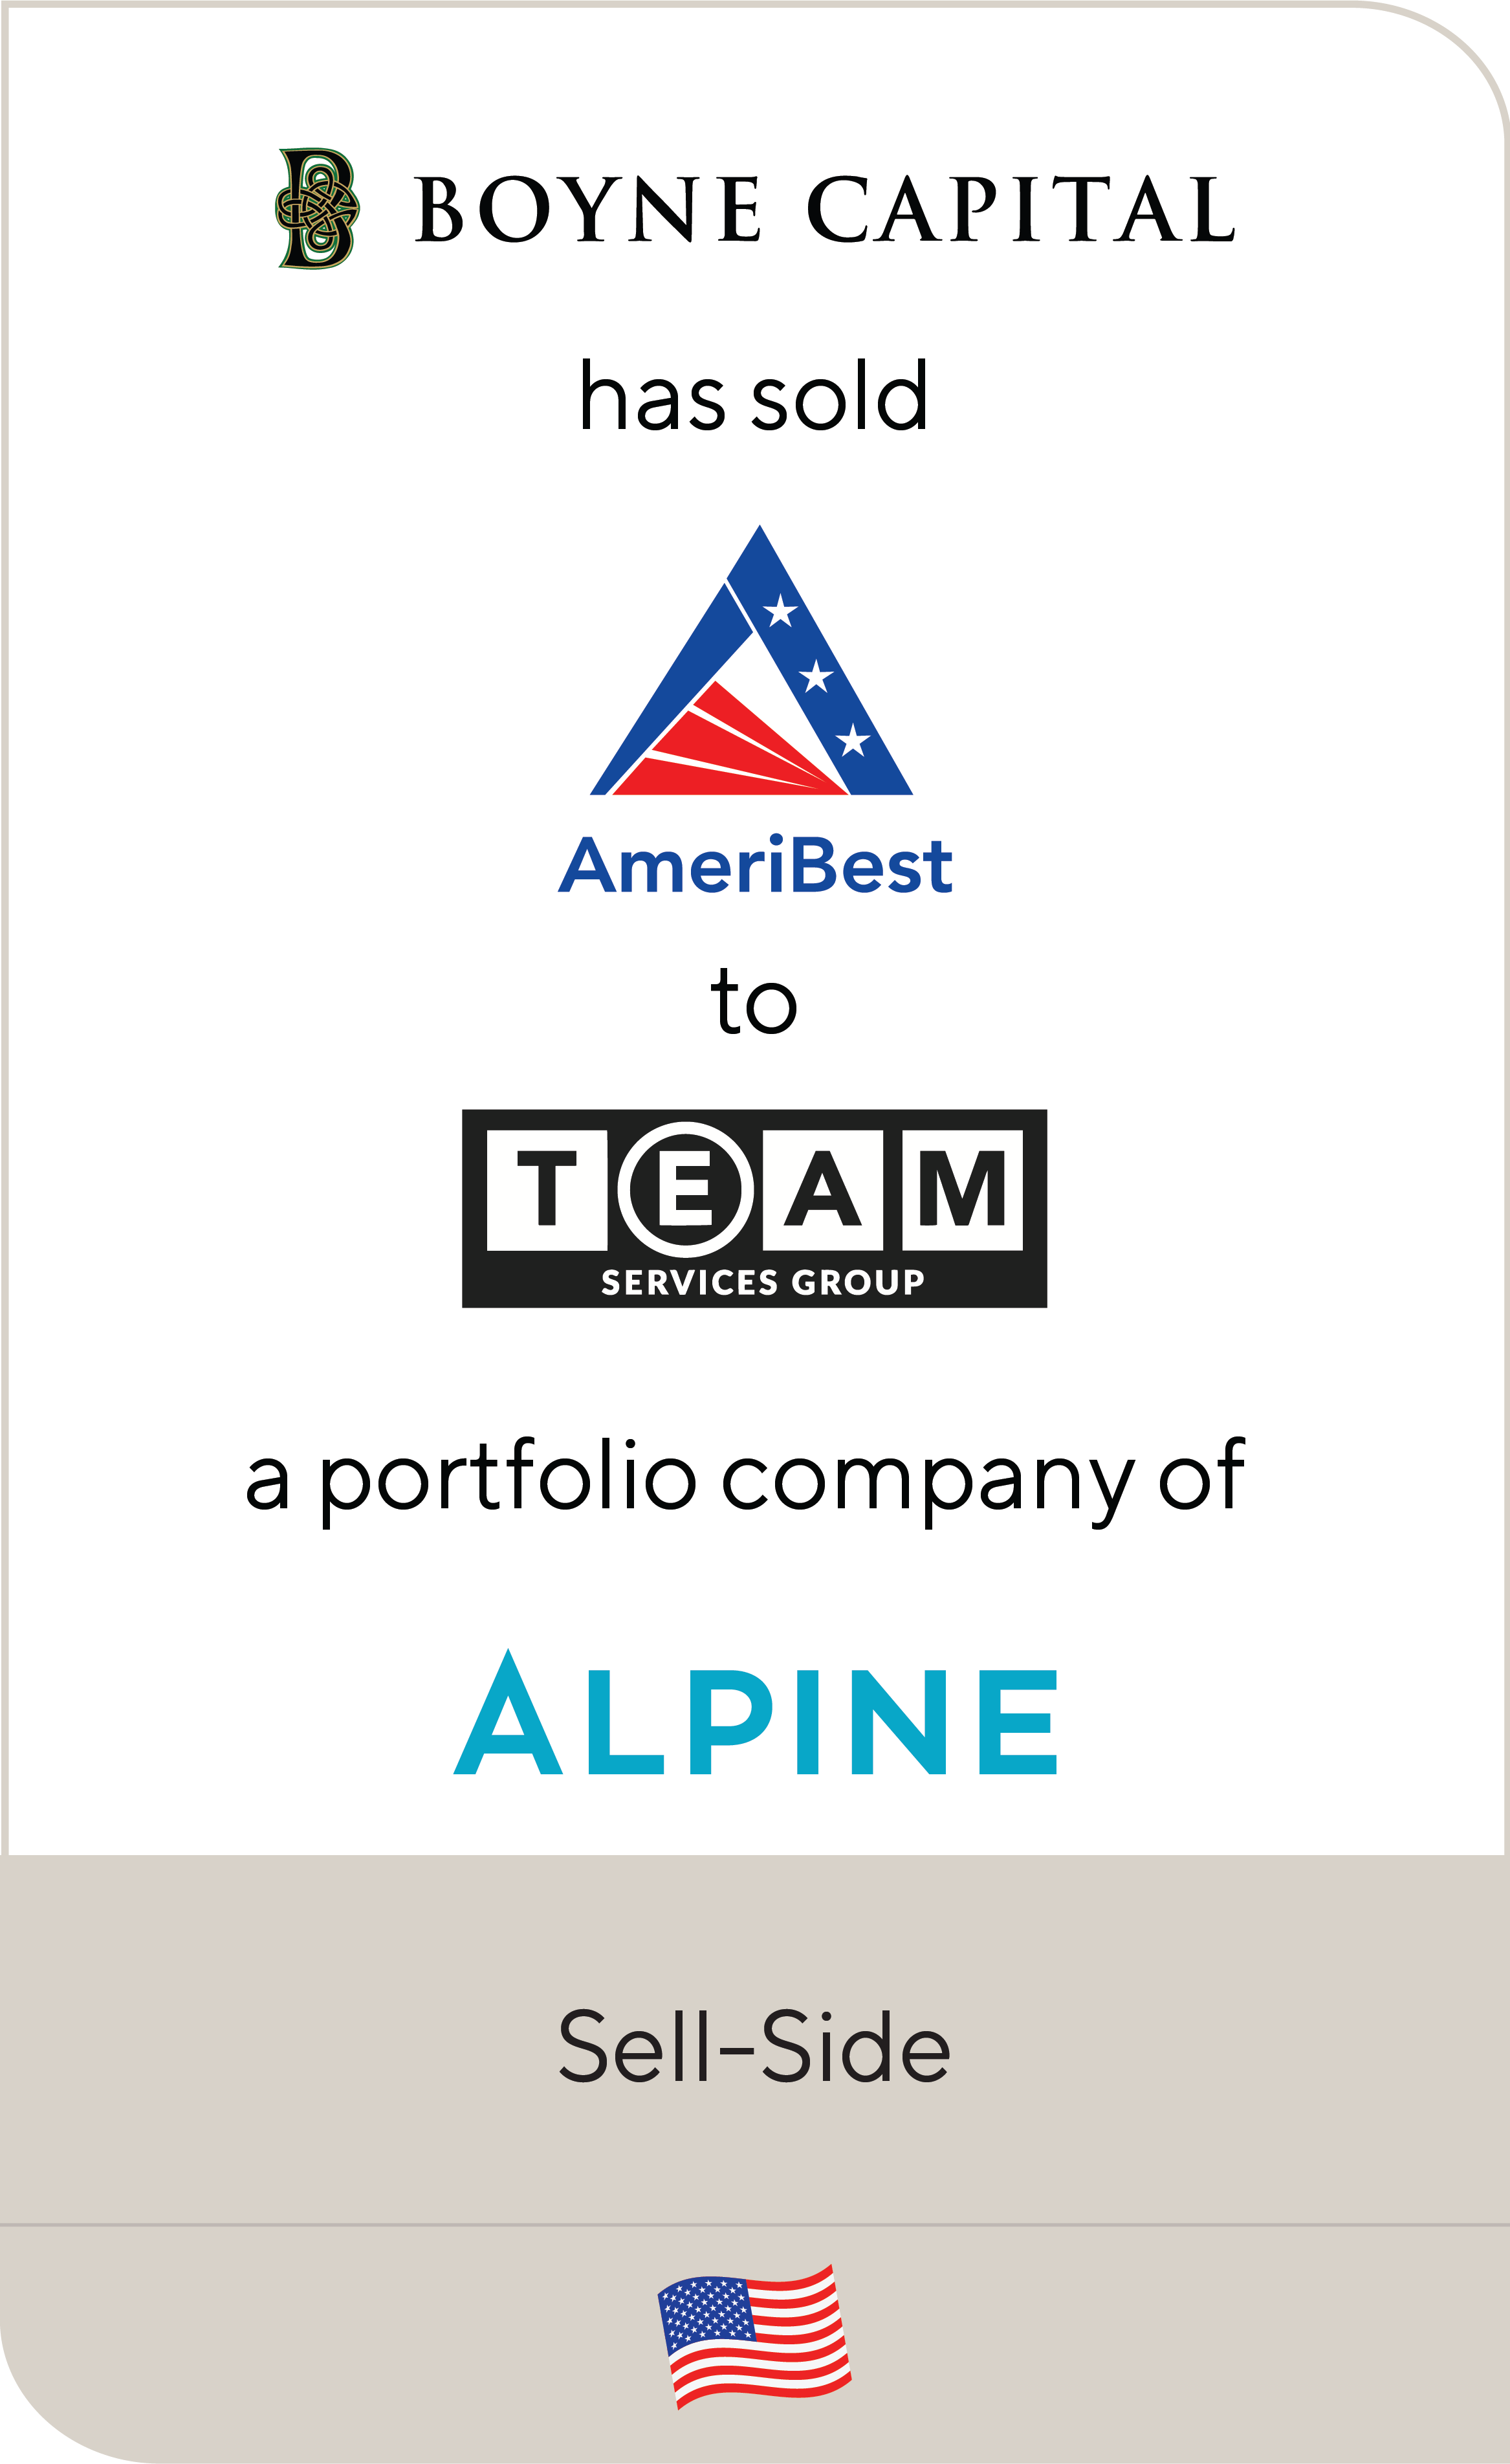 Boyne Capital AmeriBest Home Care Alpine 2019